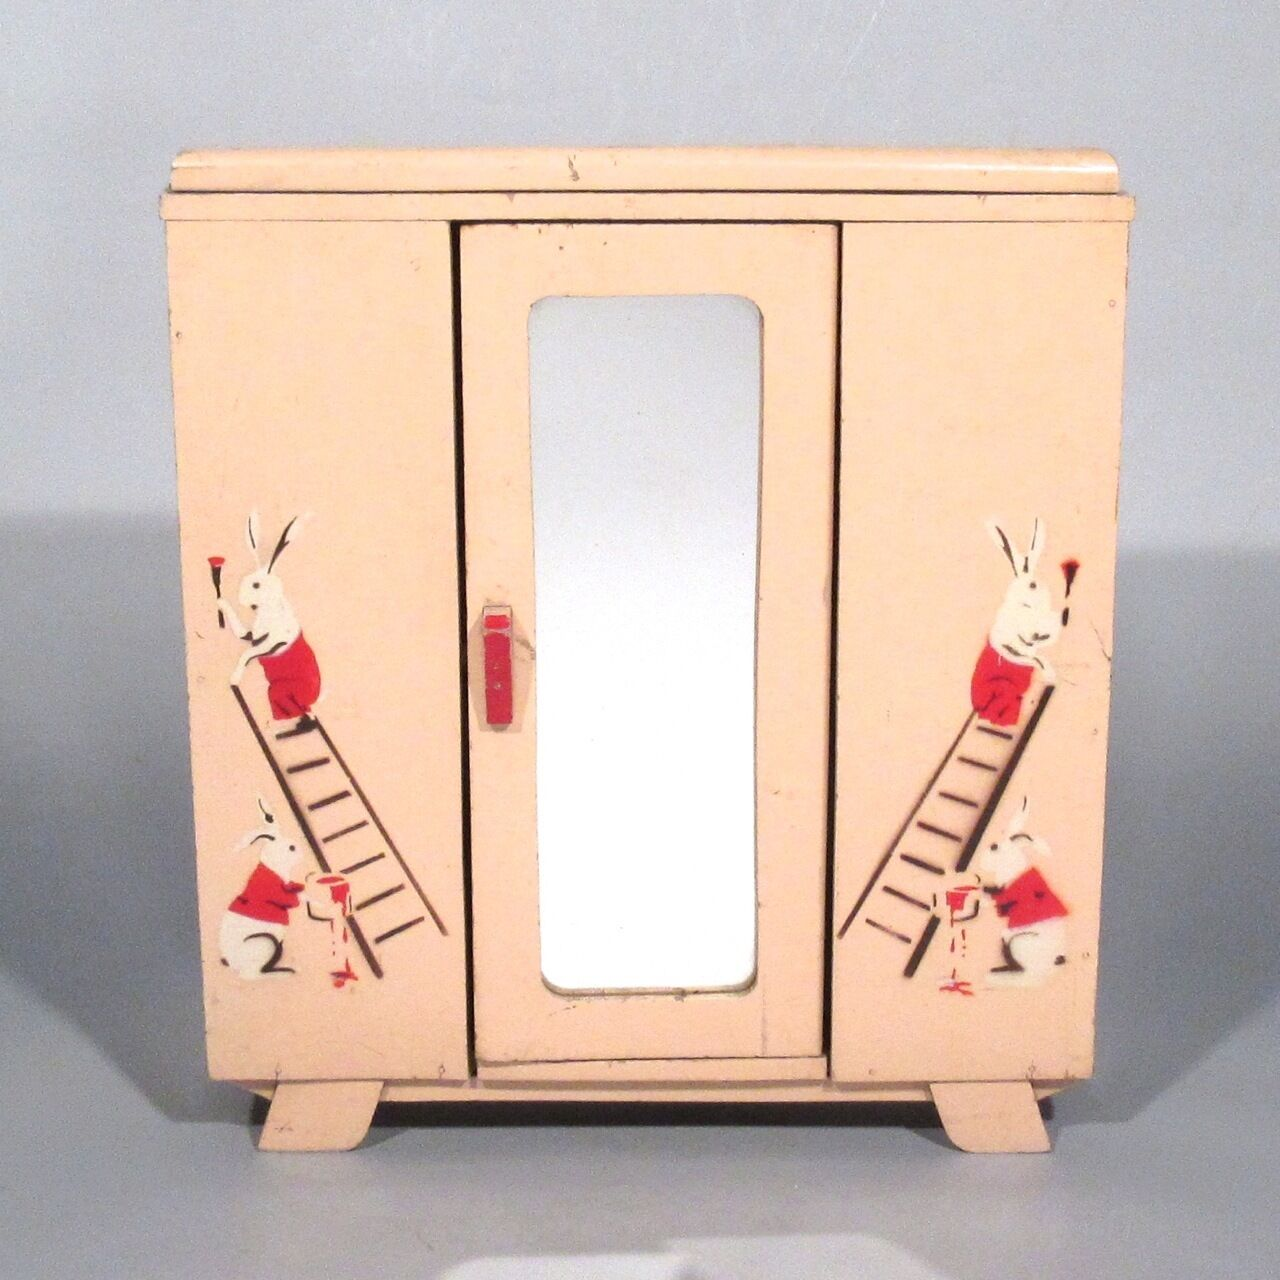 Vintage French Armoire, Art Deco Wooden Doll Furniture Armoire, French Rosa, Mirror, Rabbits 2200d8